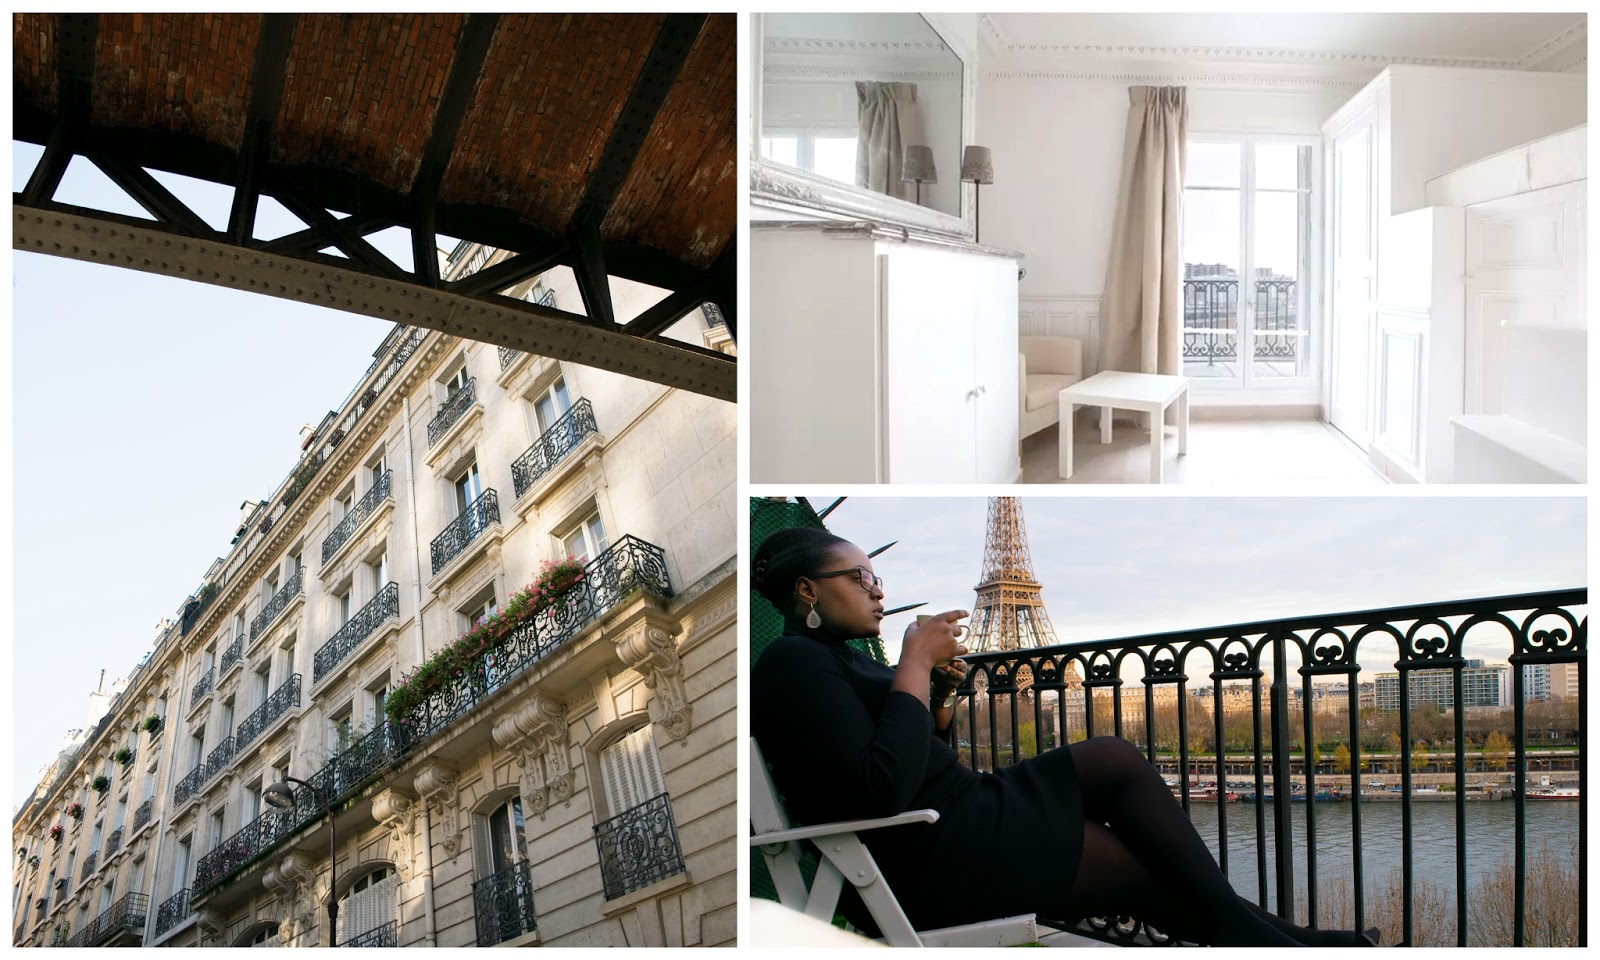 My Paris Apartment | 5 Great Reasons To Use Airbnb When You Travel